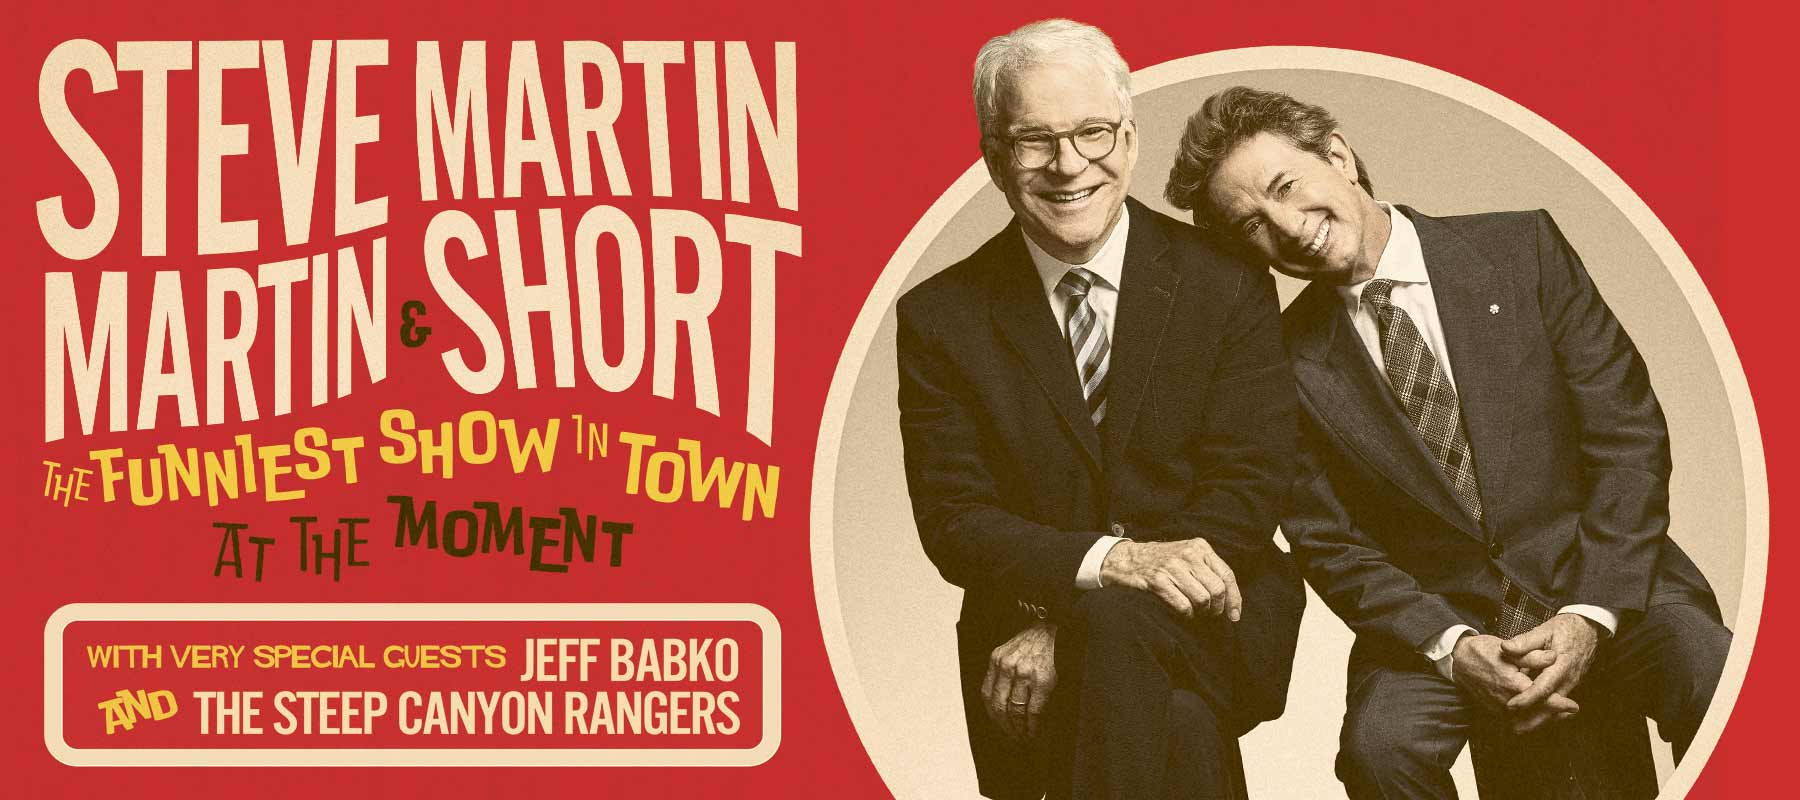 RESCHEDULED: Steve Martin & Martin Short - The Funniest Show in Town at the Moment